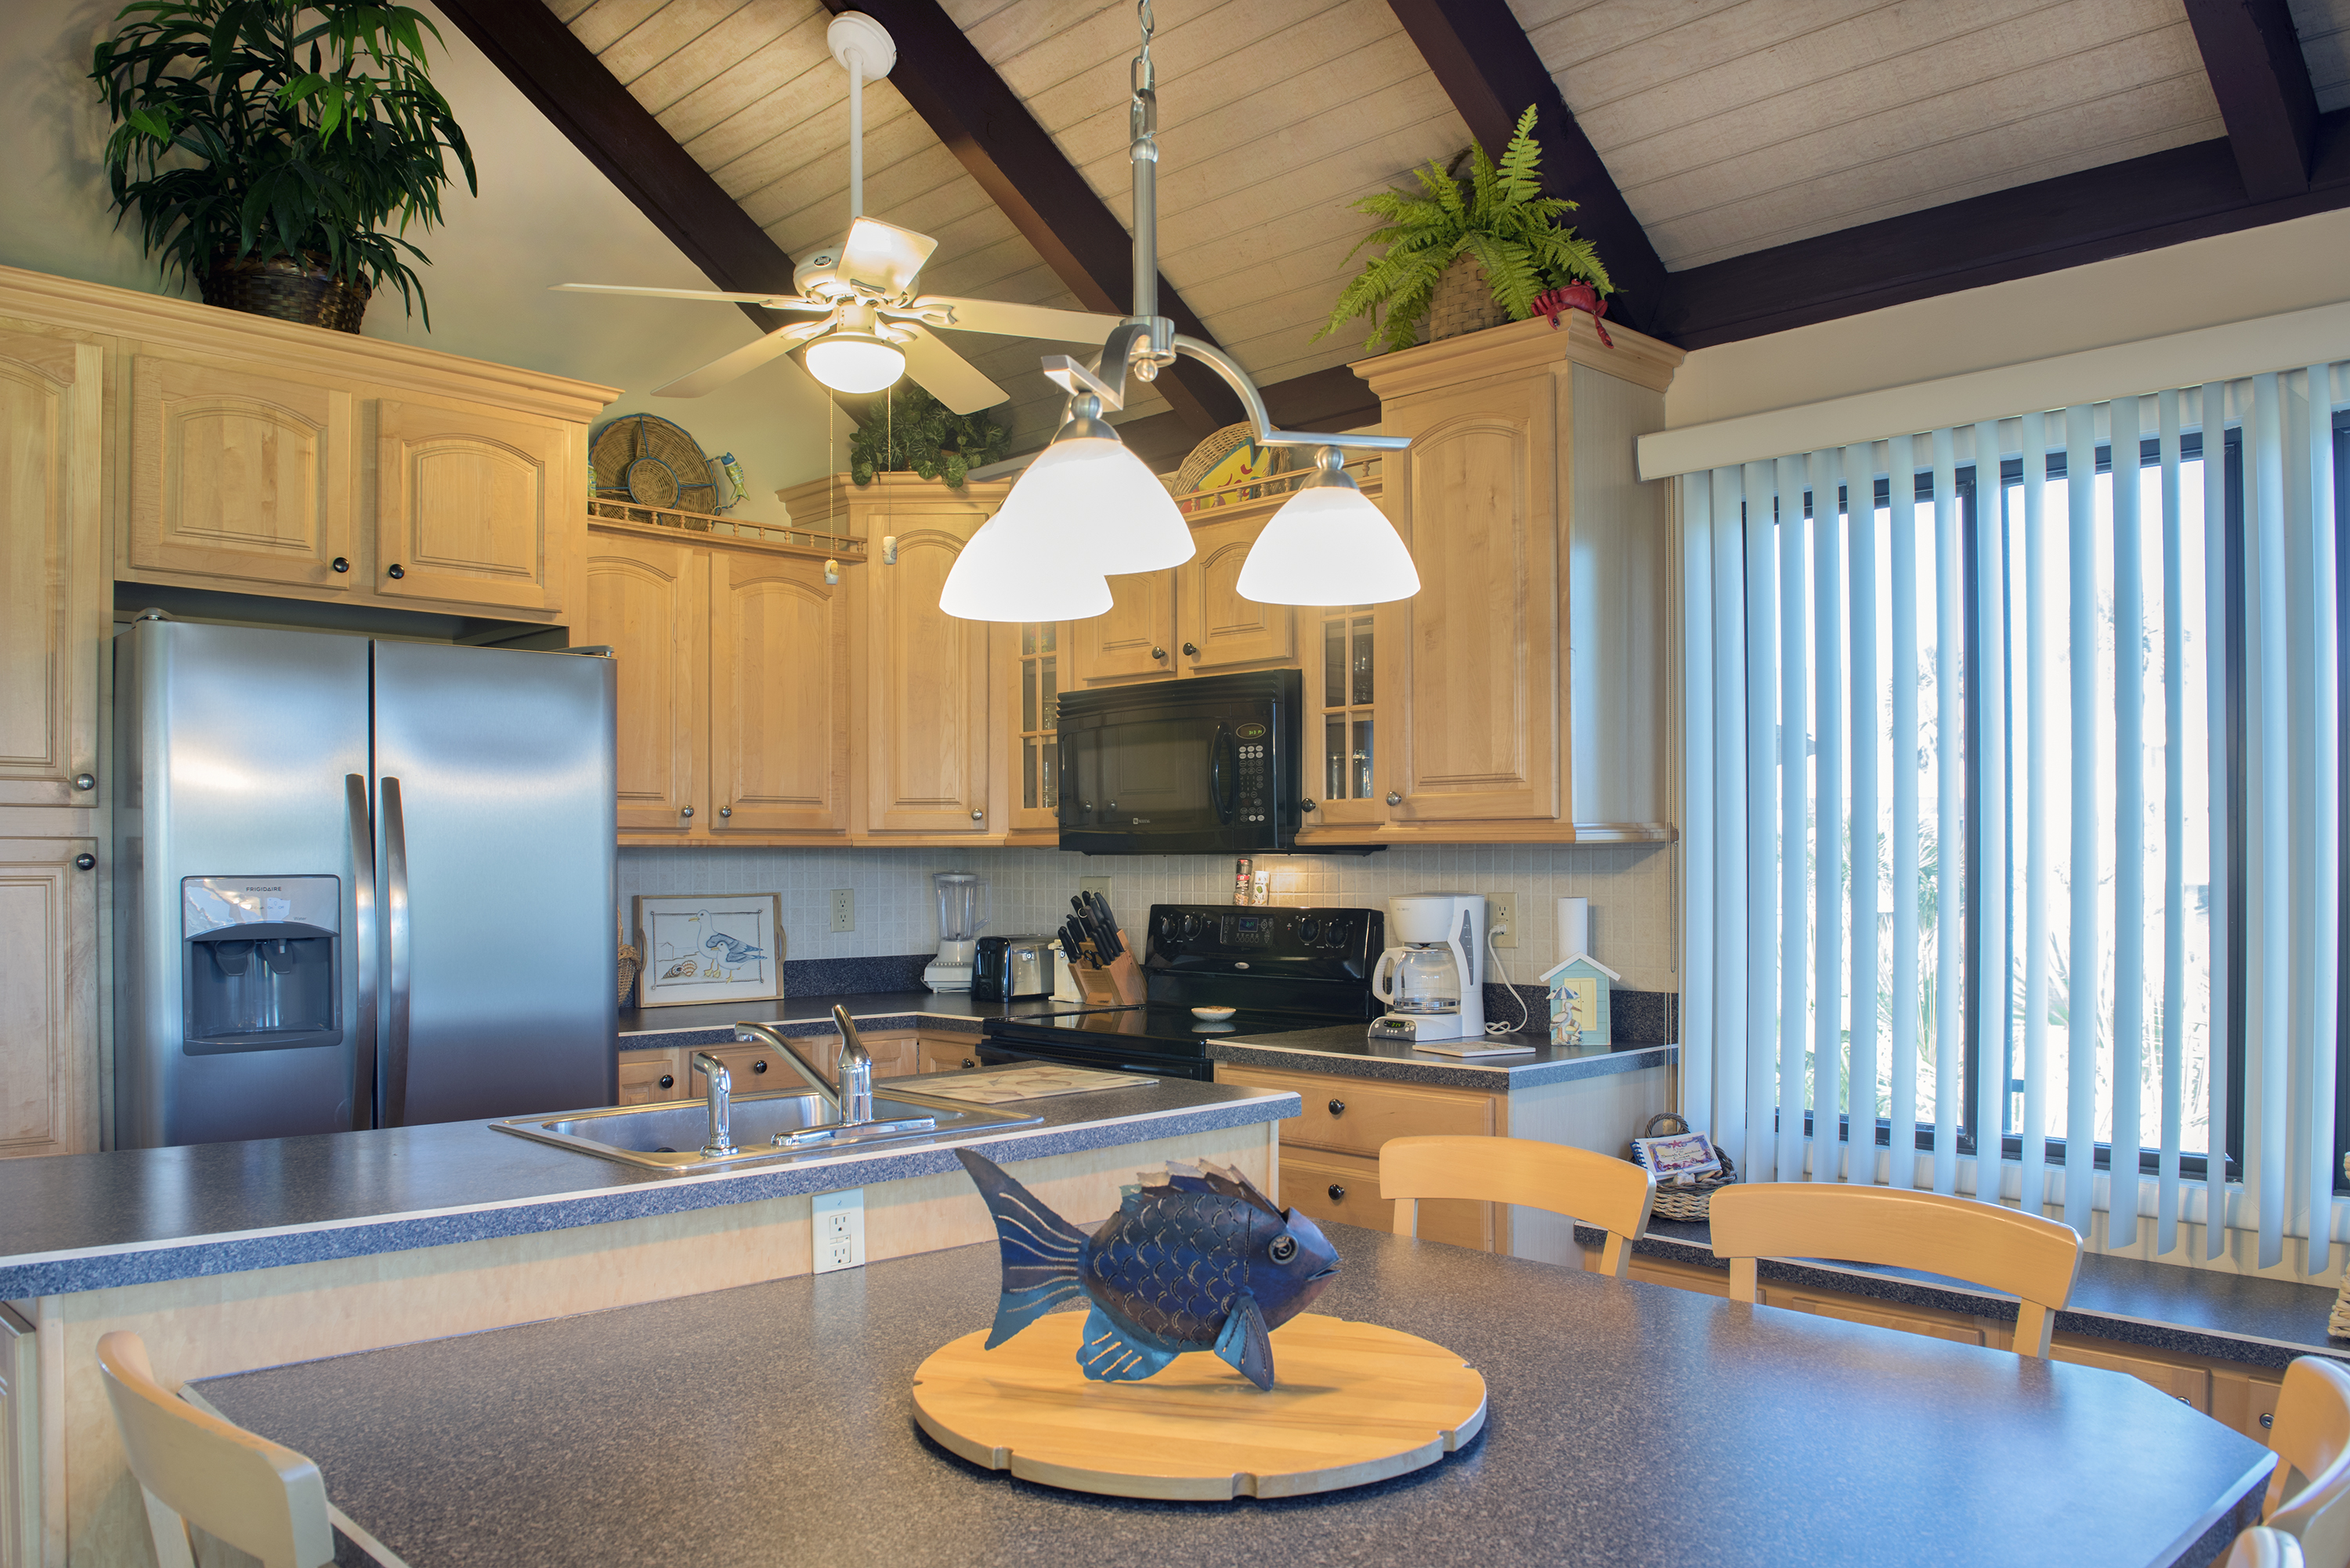 The kitchen is full of natural light and perfect for family meals.  There is a new refrigerator. The dining table seats six